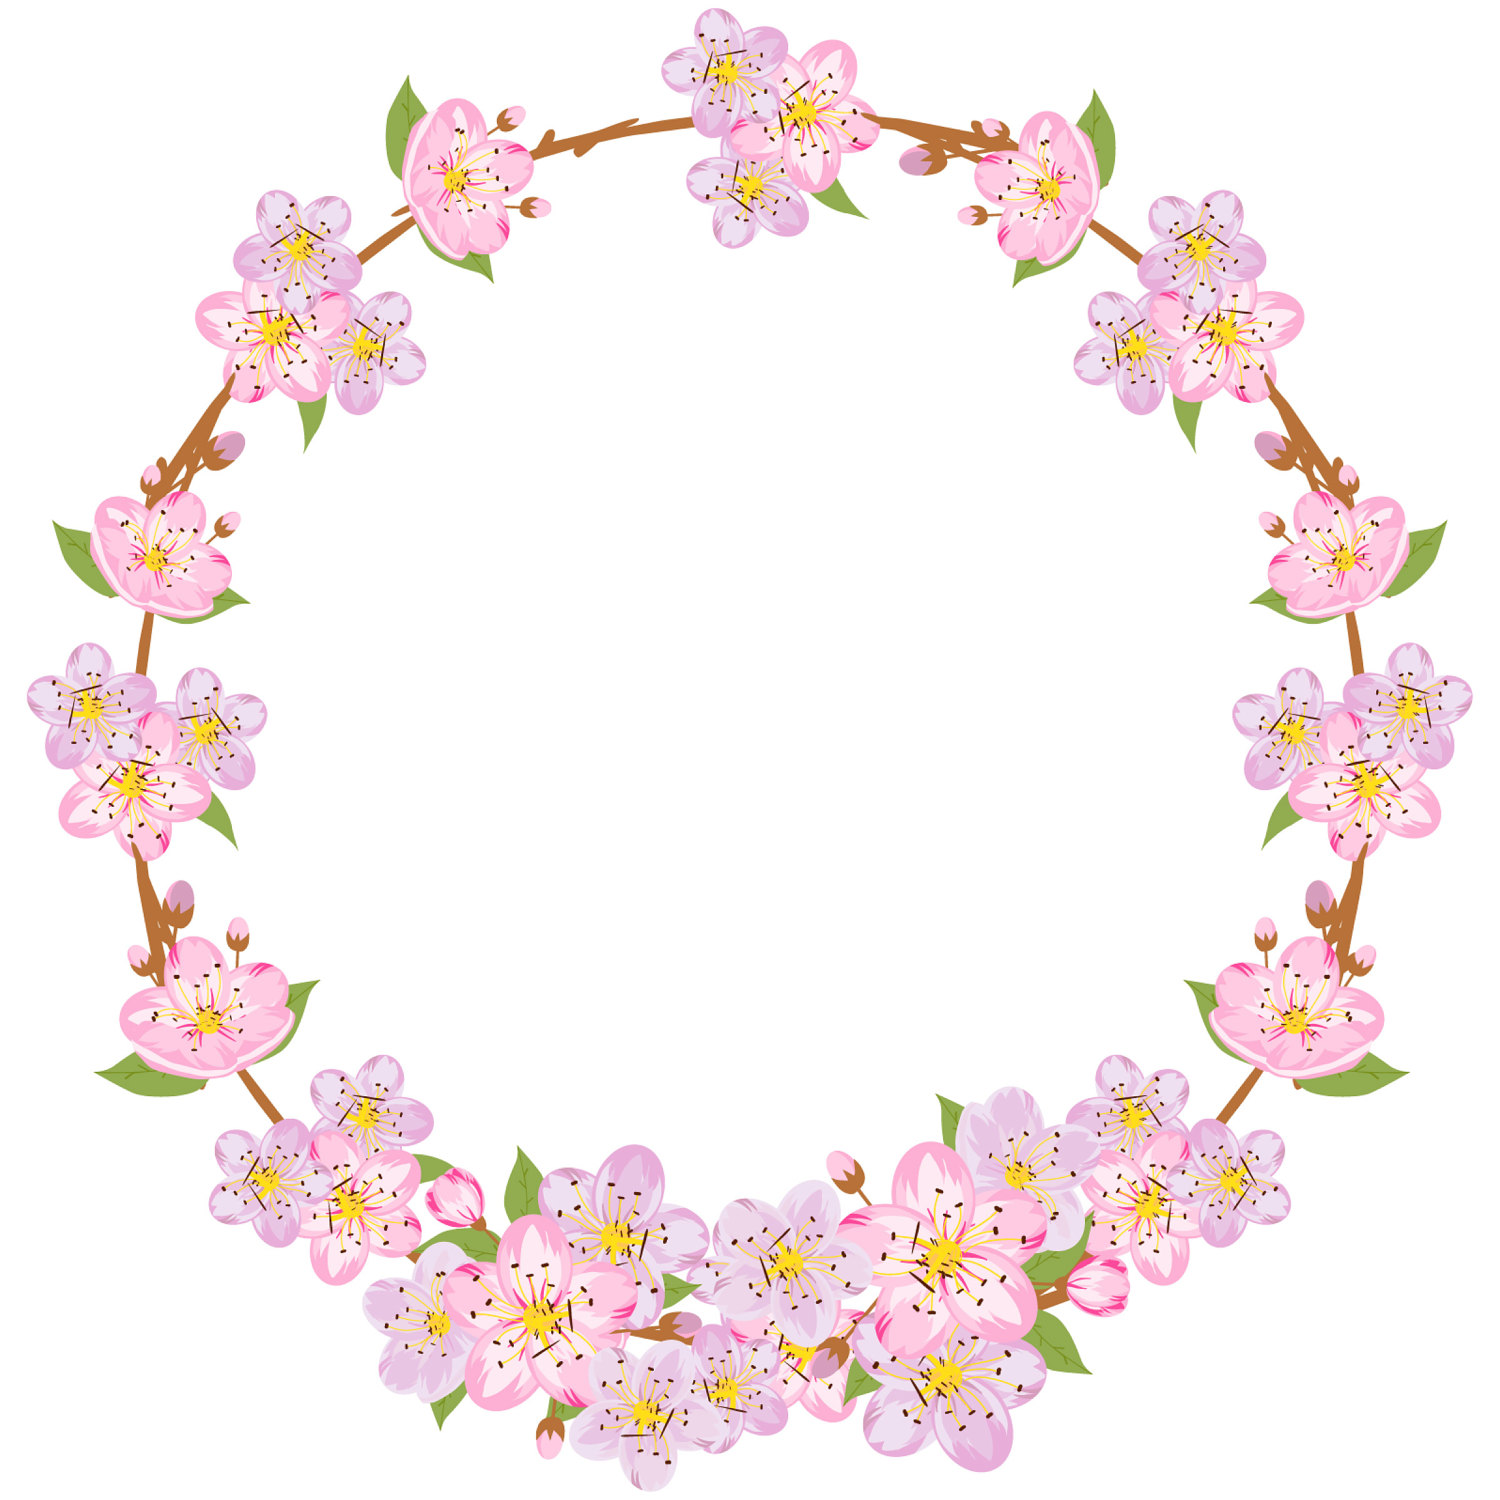 Wreath embellishment clipart clip library stock Rose Wreath Clipart | Free download best Rose Wreath Clipart ... clip library stock